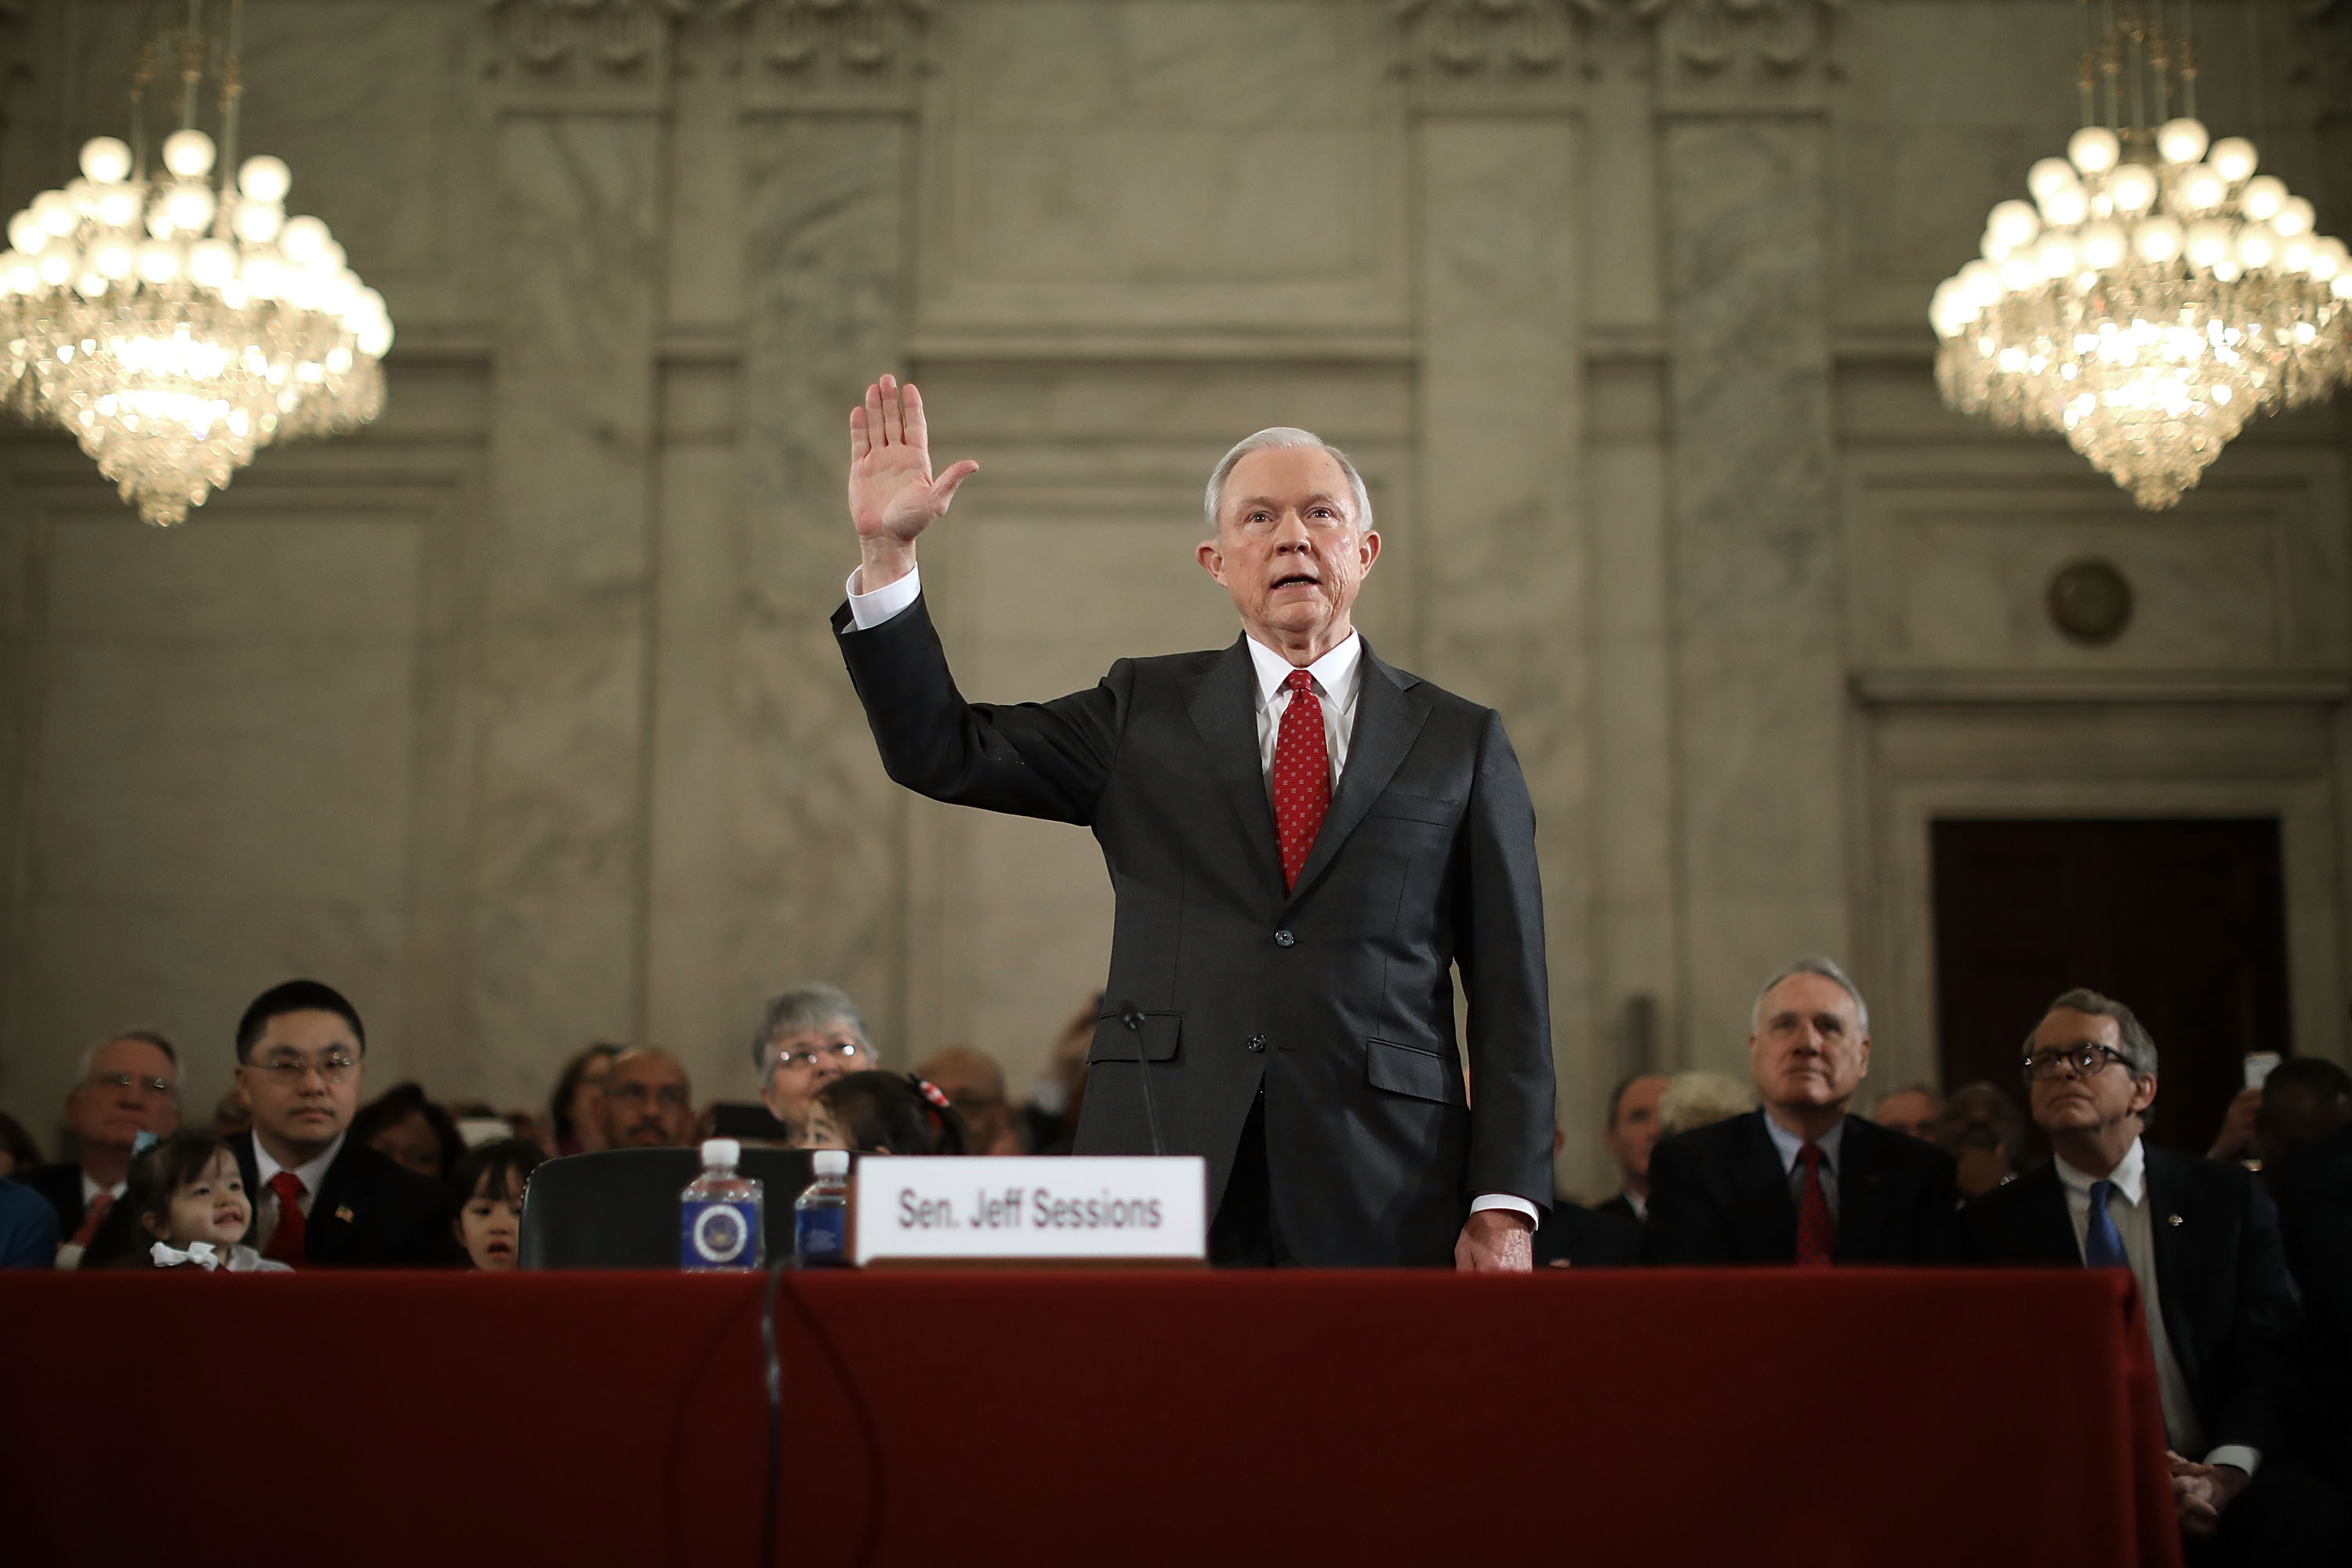 Sen. Jeff Sessions is sworn in before the Senate Judiciary Committee during his confirmation hearing to be the U.S. attorney general Jan. 10, 2017 in Washington. (credit: Chip Somodevilla/Getty Images)